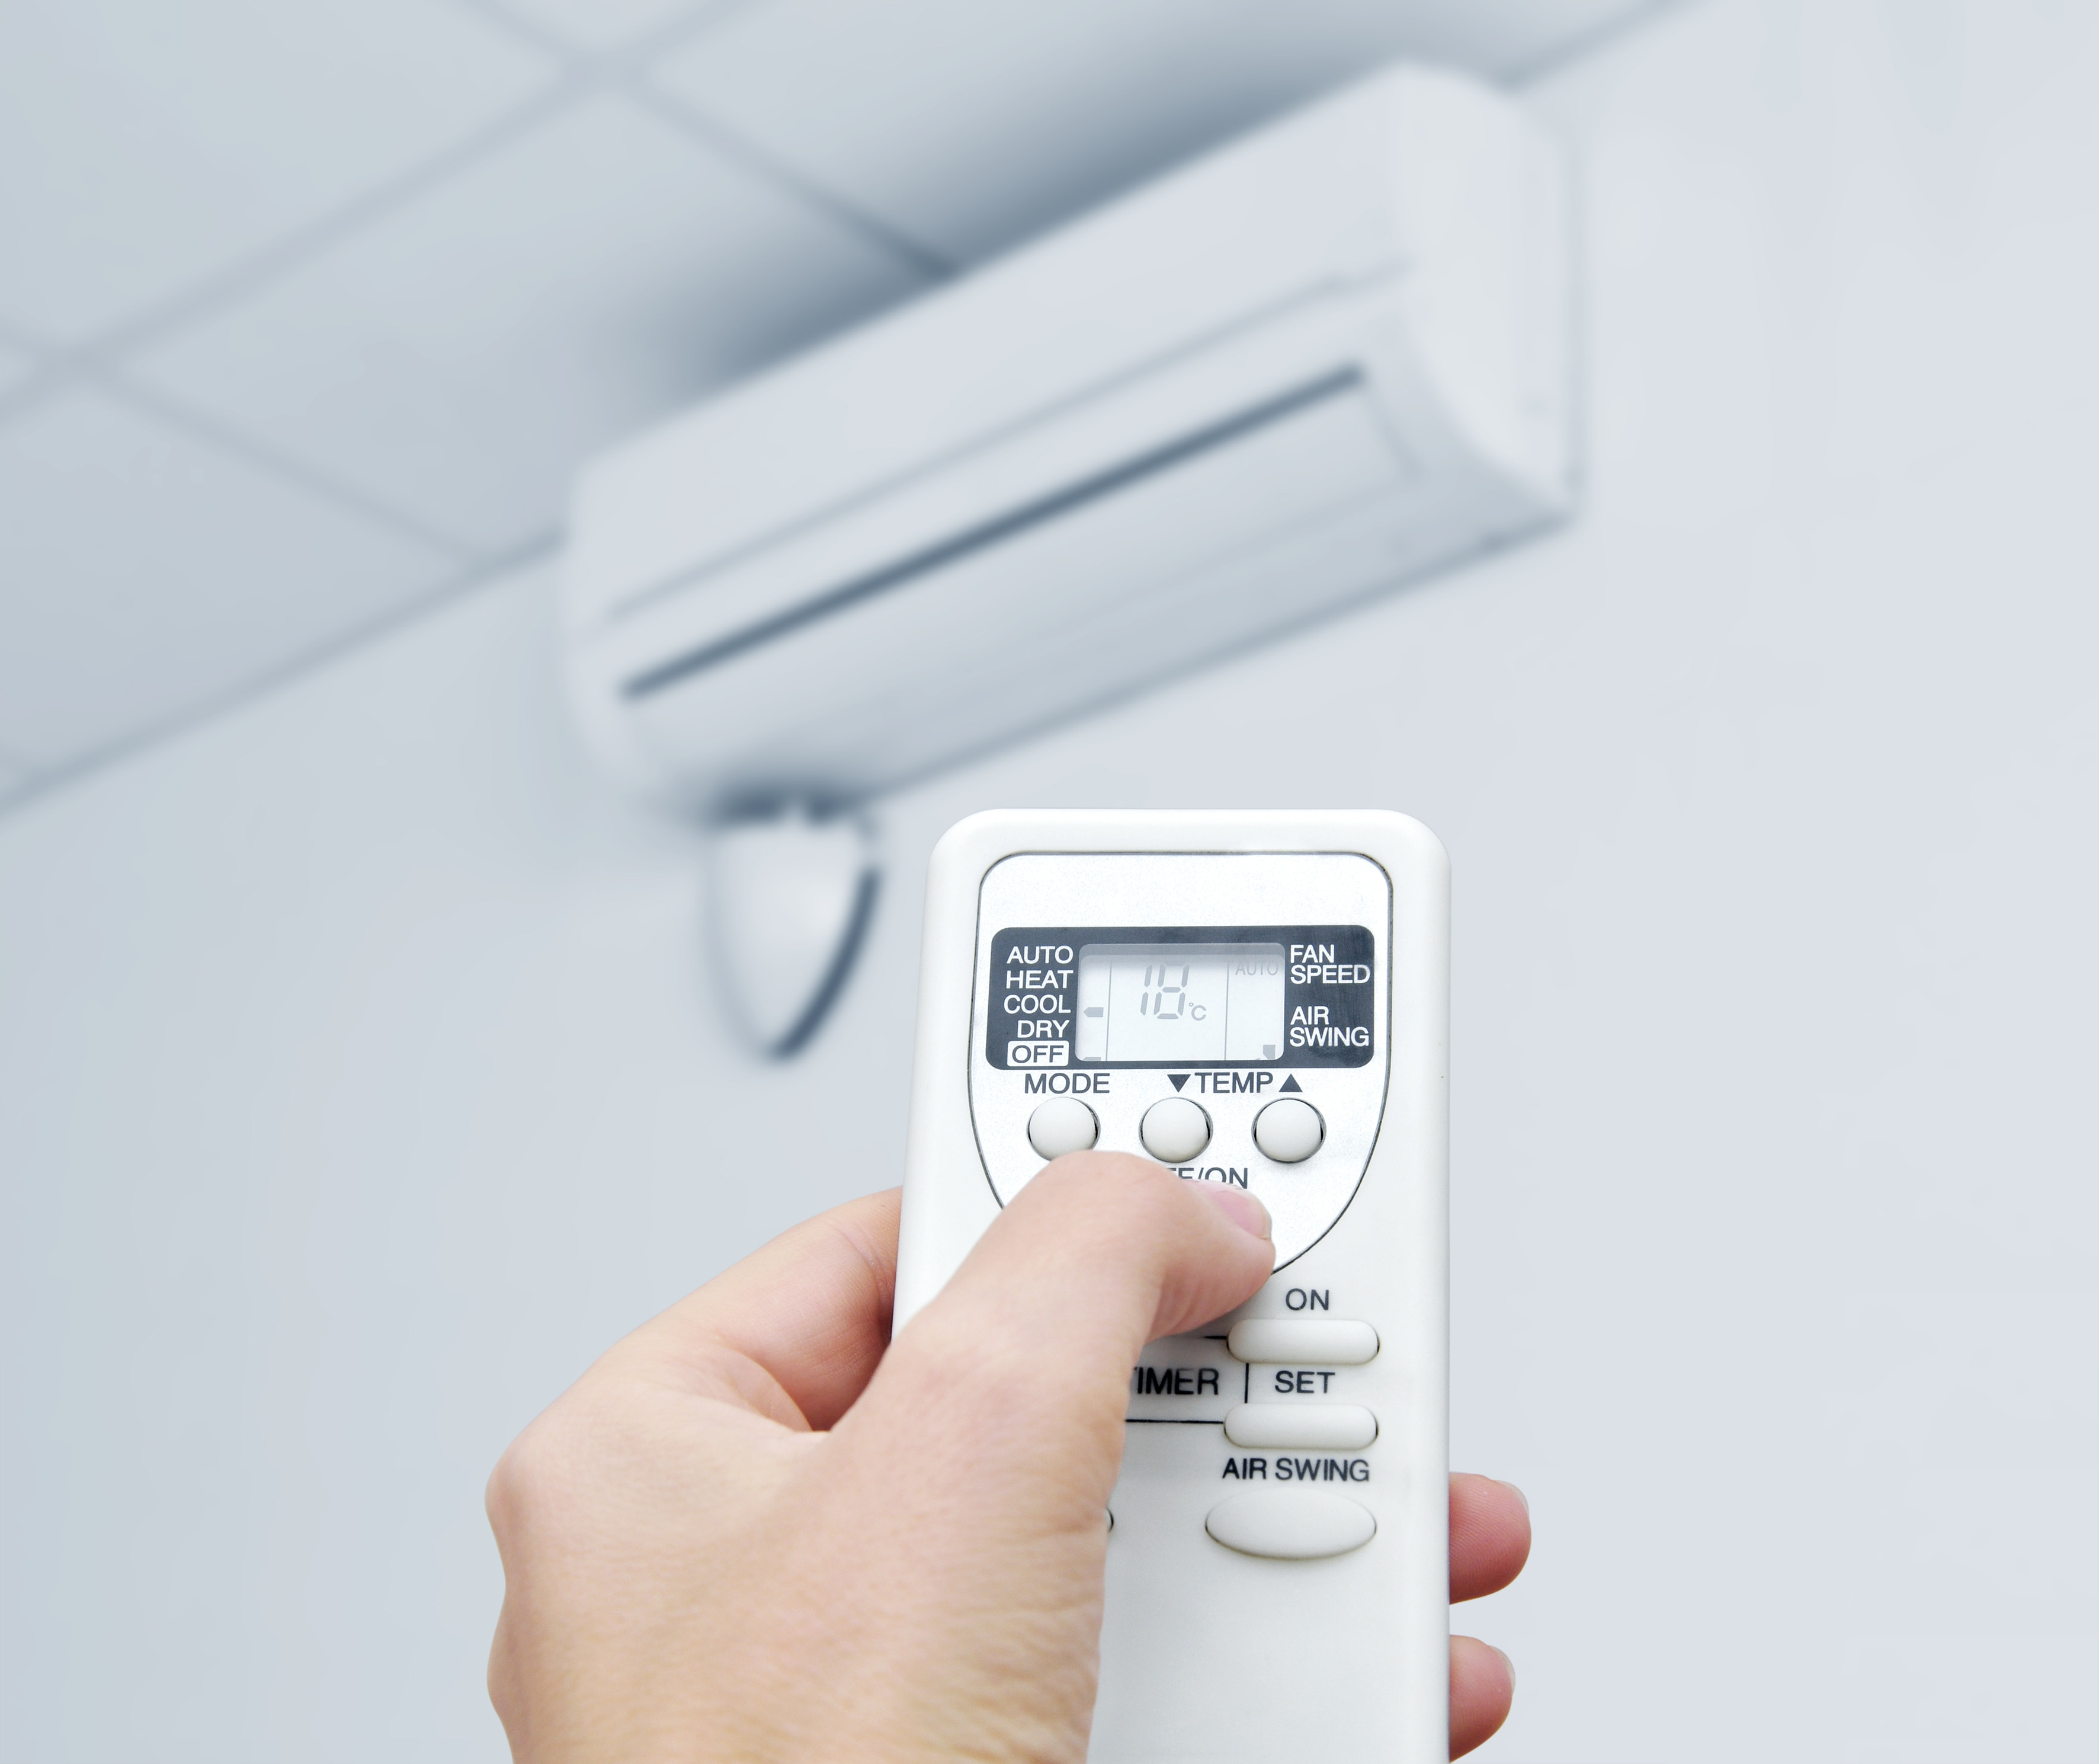 Air conditioning/heat with a remote control